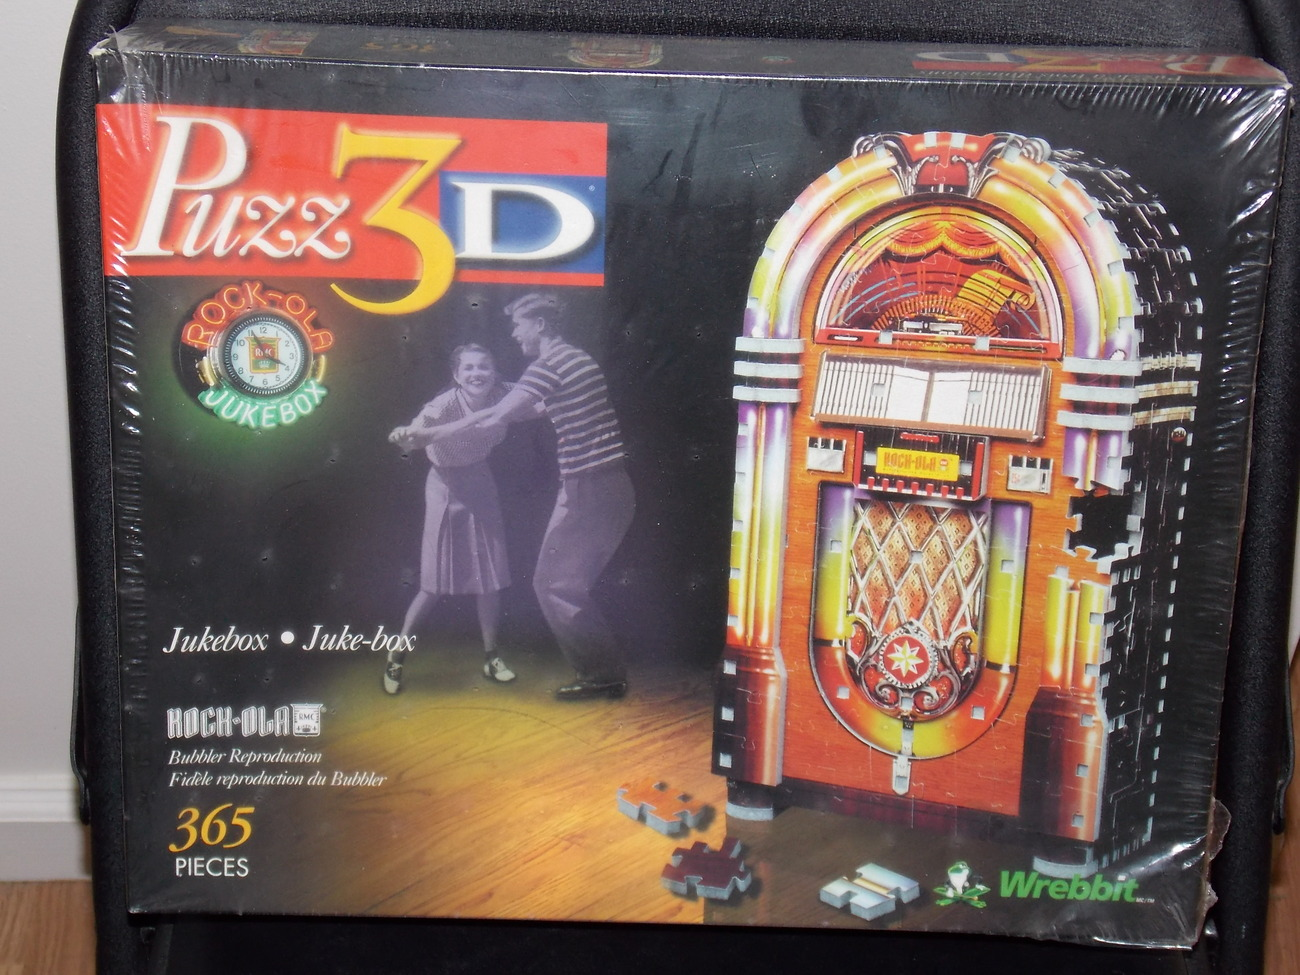 Primary image for 1999 Wrebbit Rock-Ola Jukebox 365 Piece 3D Puzzle New In Th Box